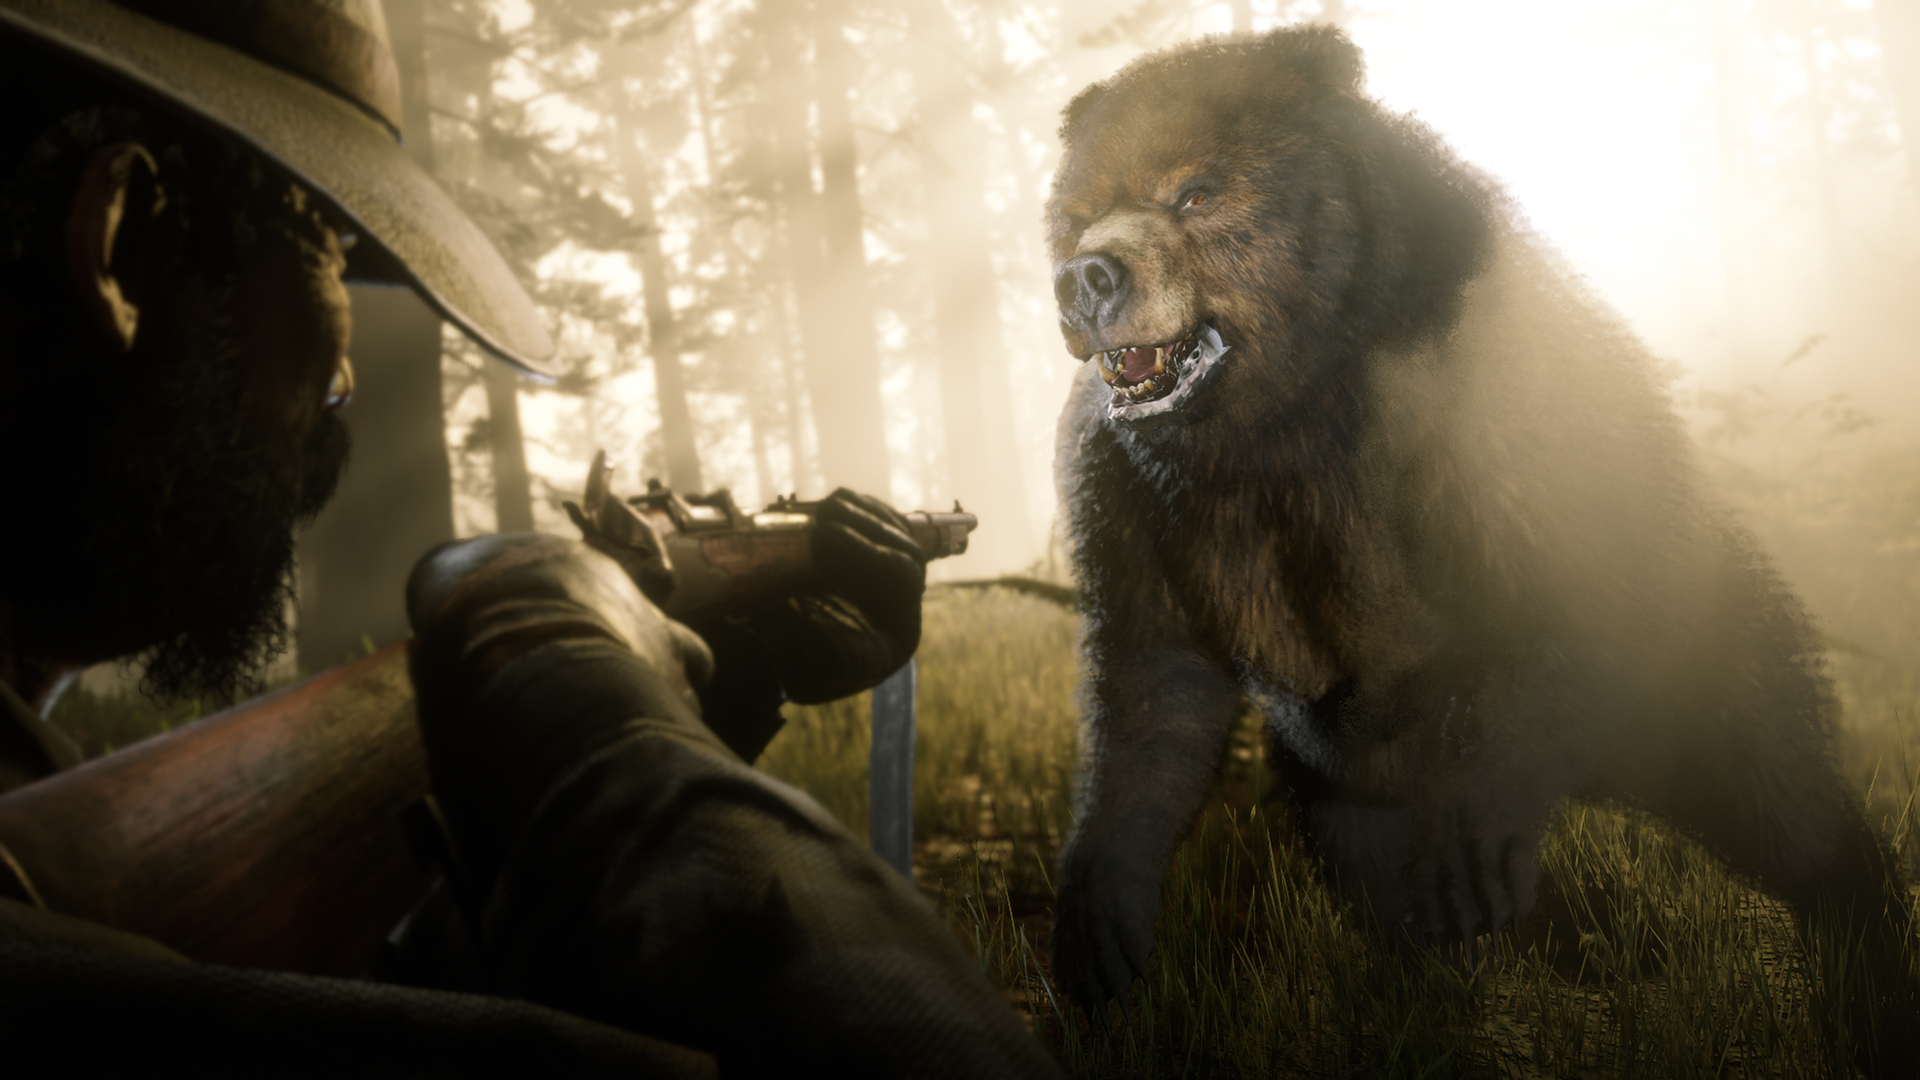 Red Dead Redemption 2 Update 1 10 Improves Stability and